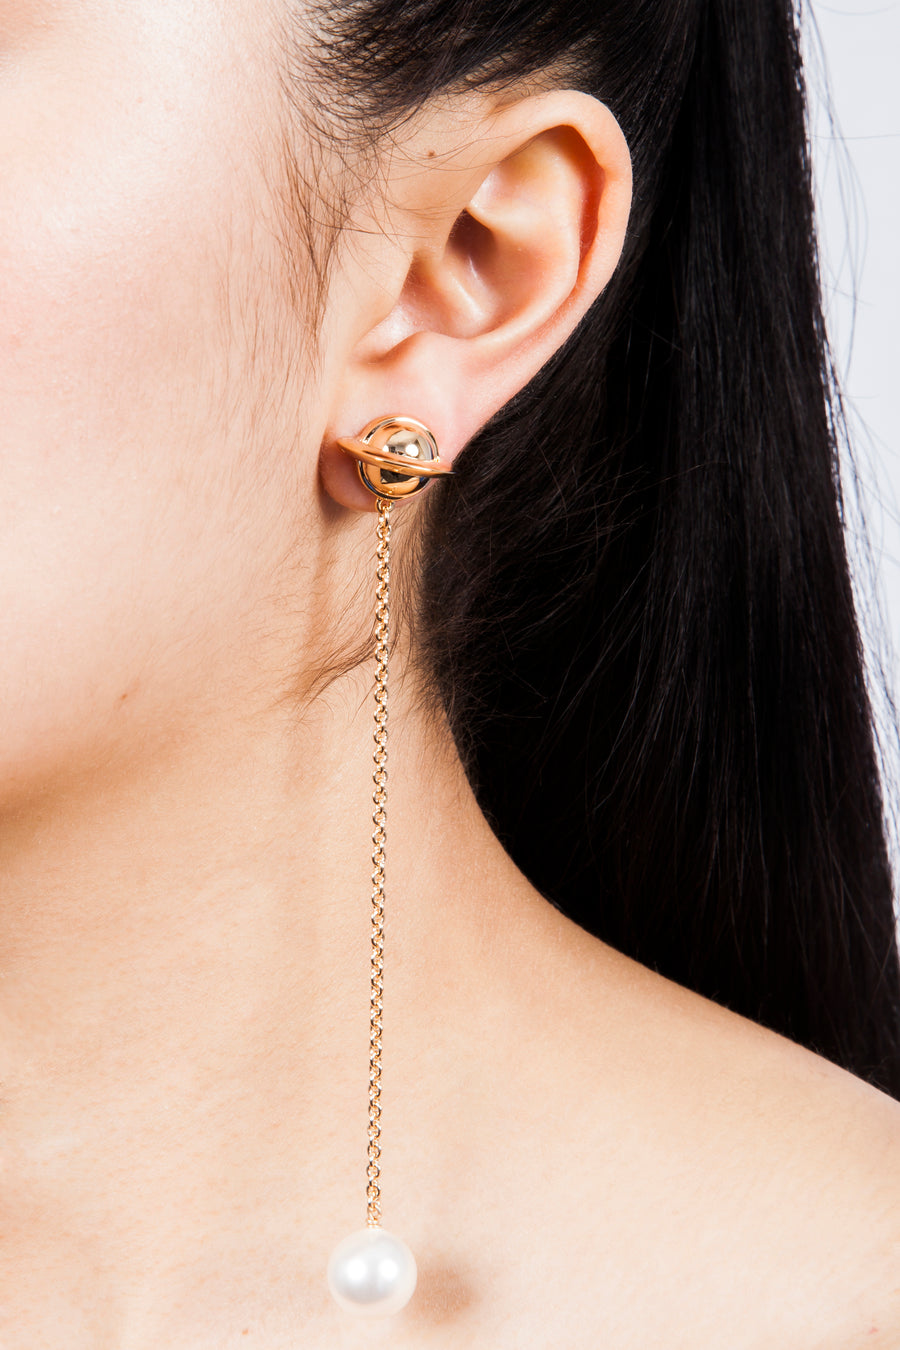 Astro 27 Earrings